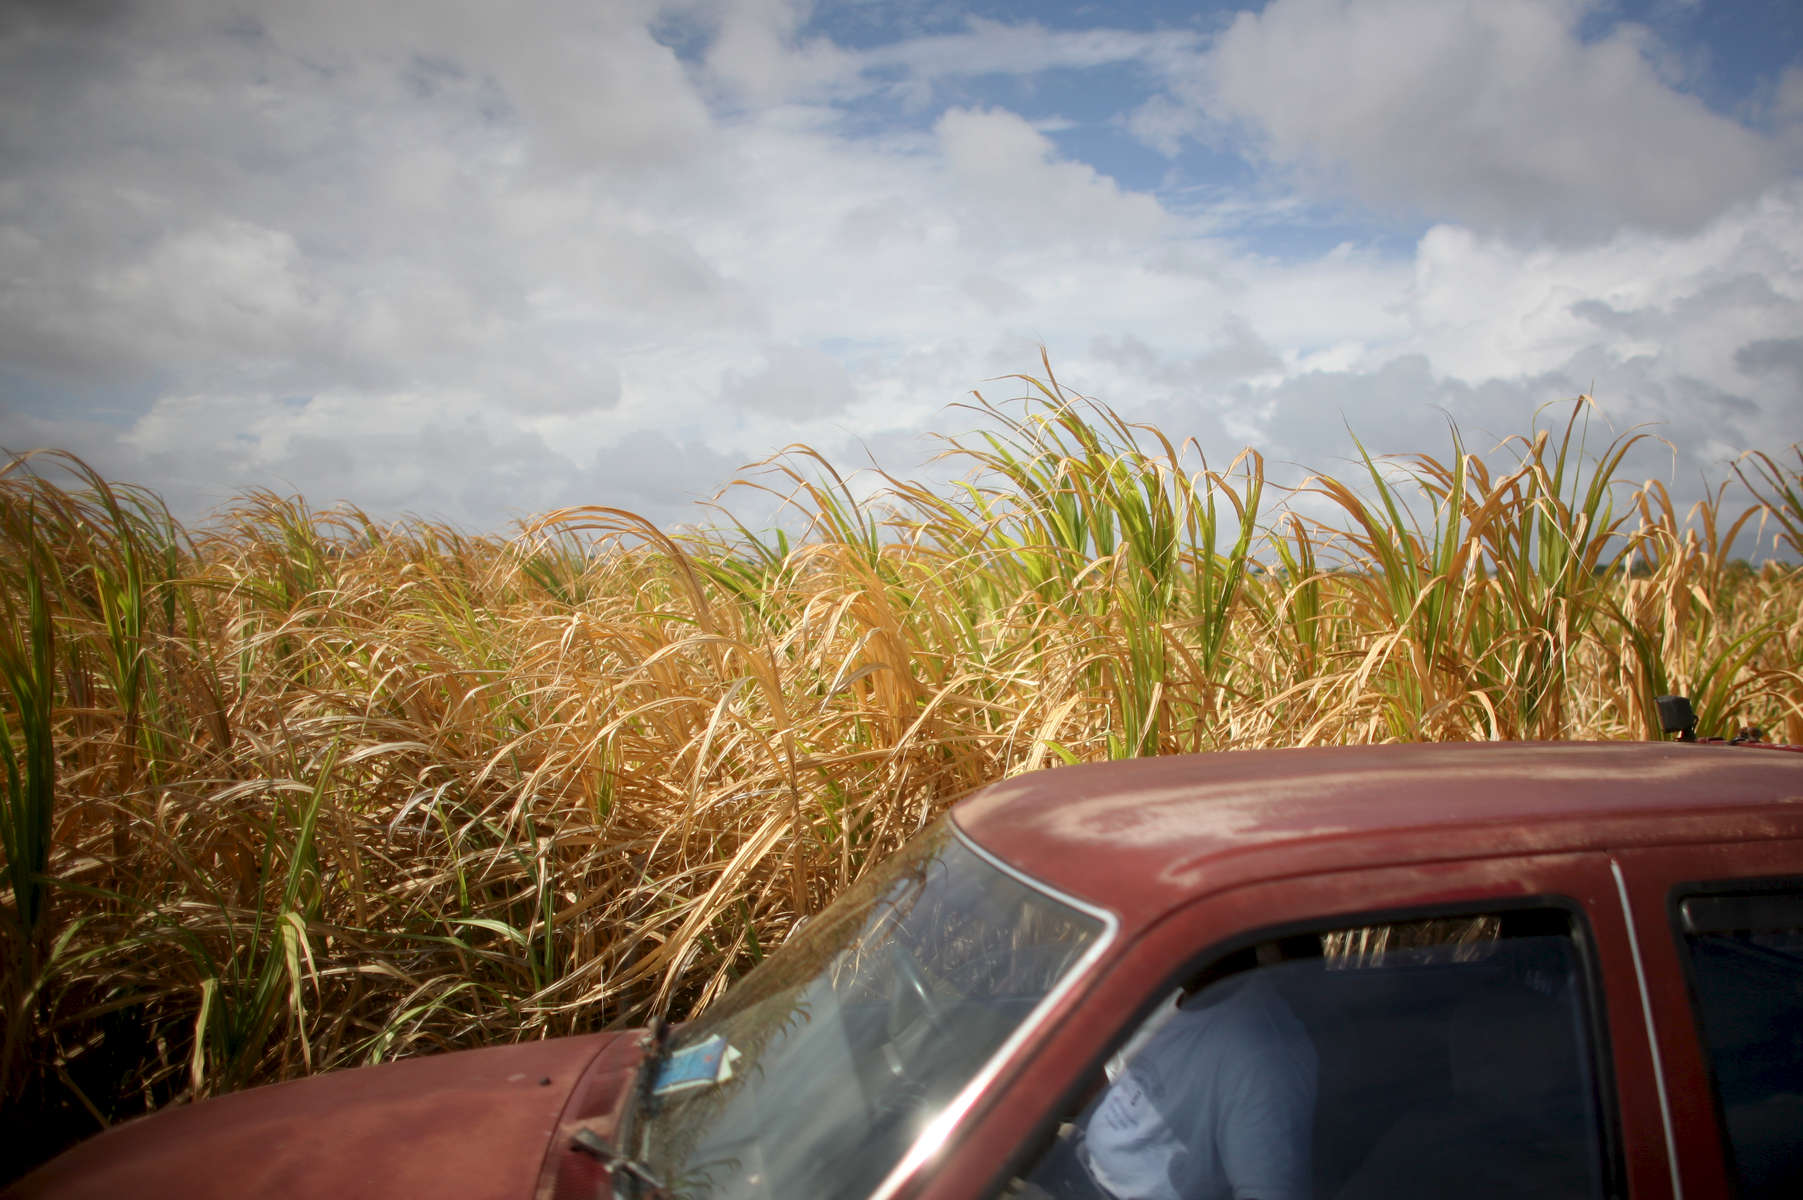 A car passes a sugar field in Barbados on Saturday, April 10, 2010. (For The New York Times)